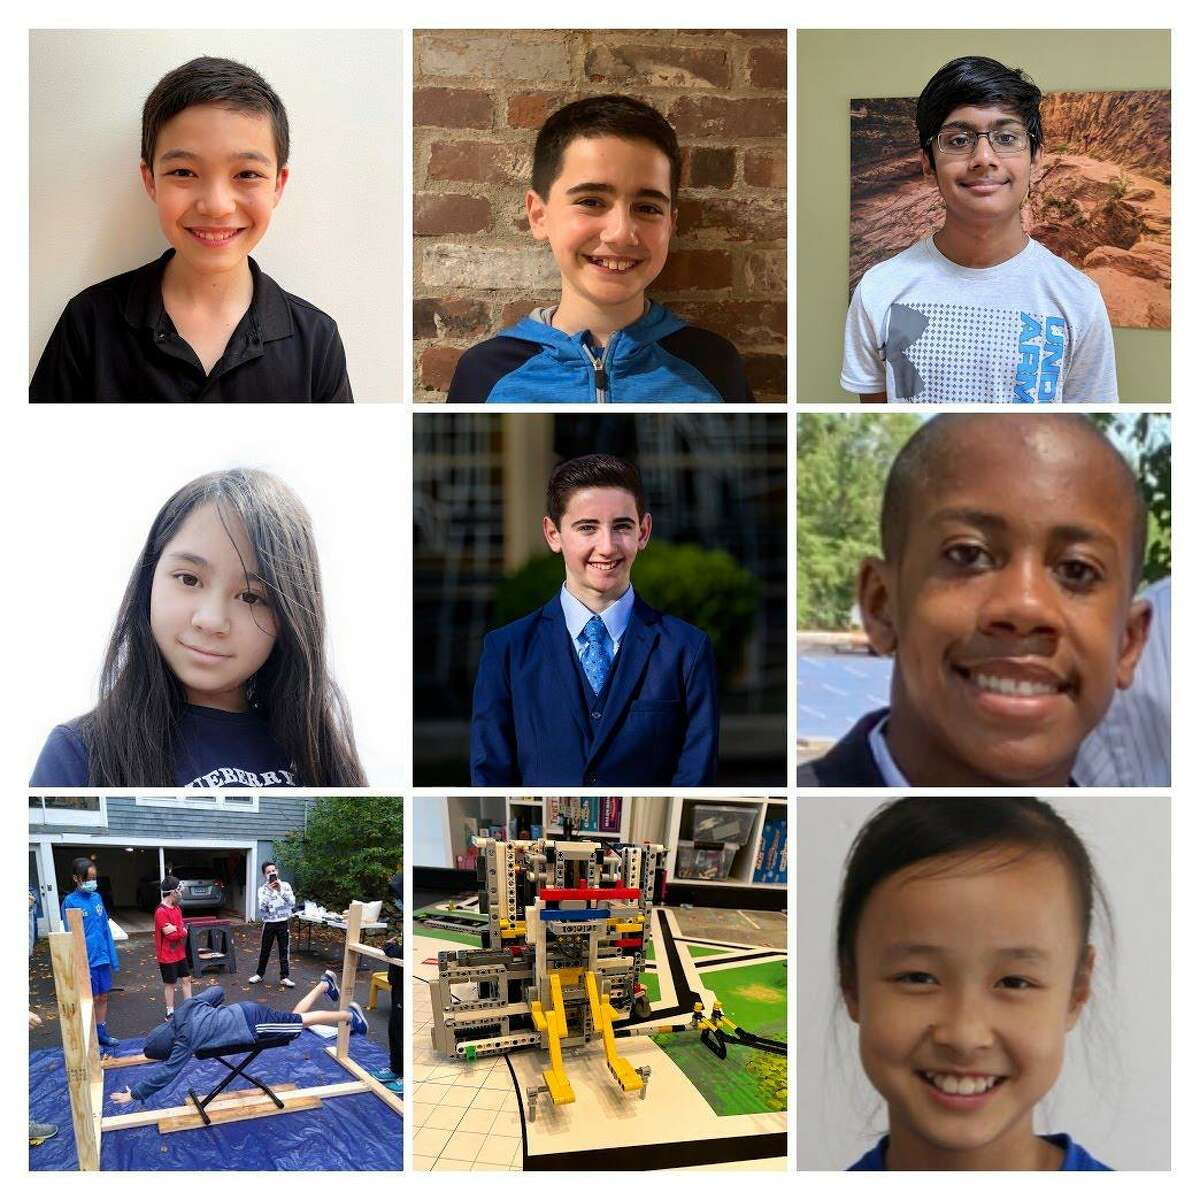 The Robosapiens include Beecher Road School and Amity Middle School students: Henrietta Hall, Lucy Jiang, Alex Klee, Jacob Klee, Mihir Nandy, Jacob Richards and Xander Shavers. They won the FIRST Lego League State Championship.